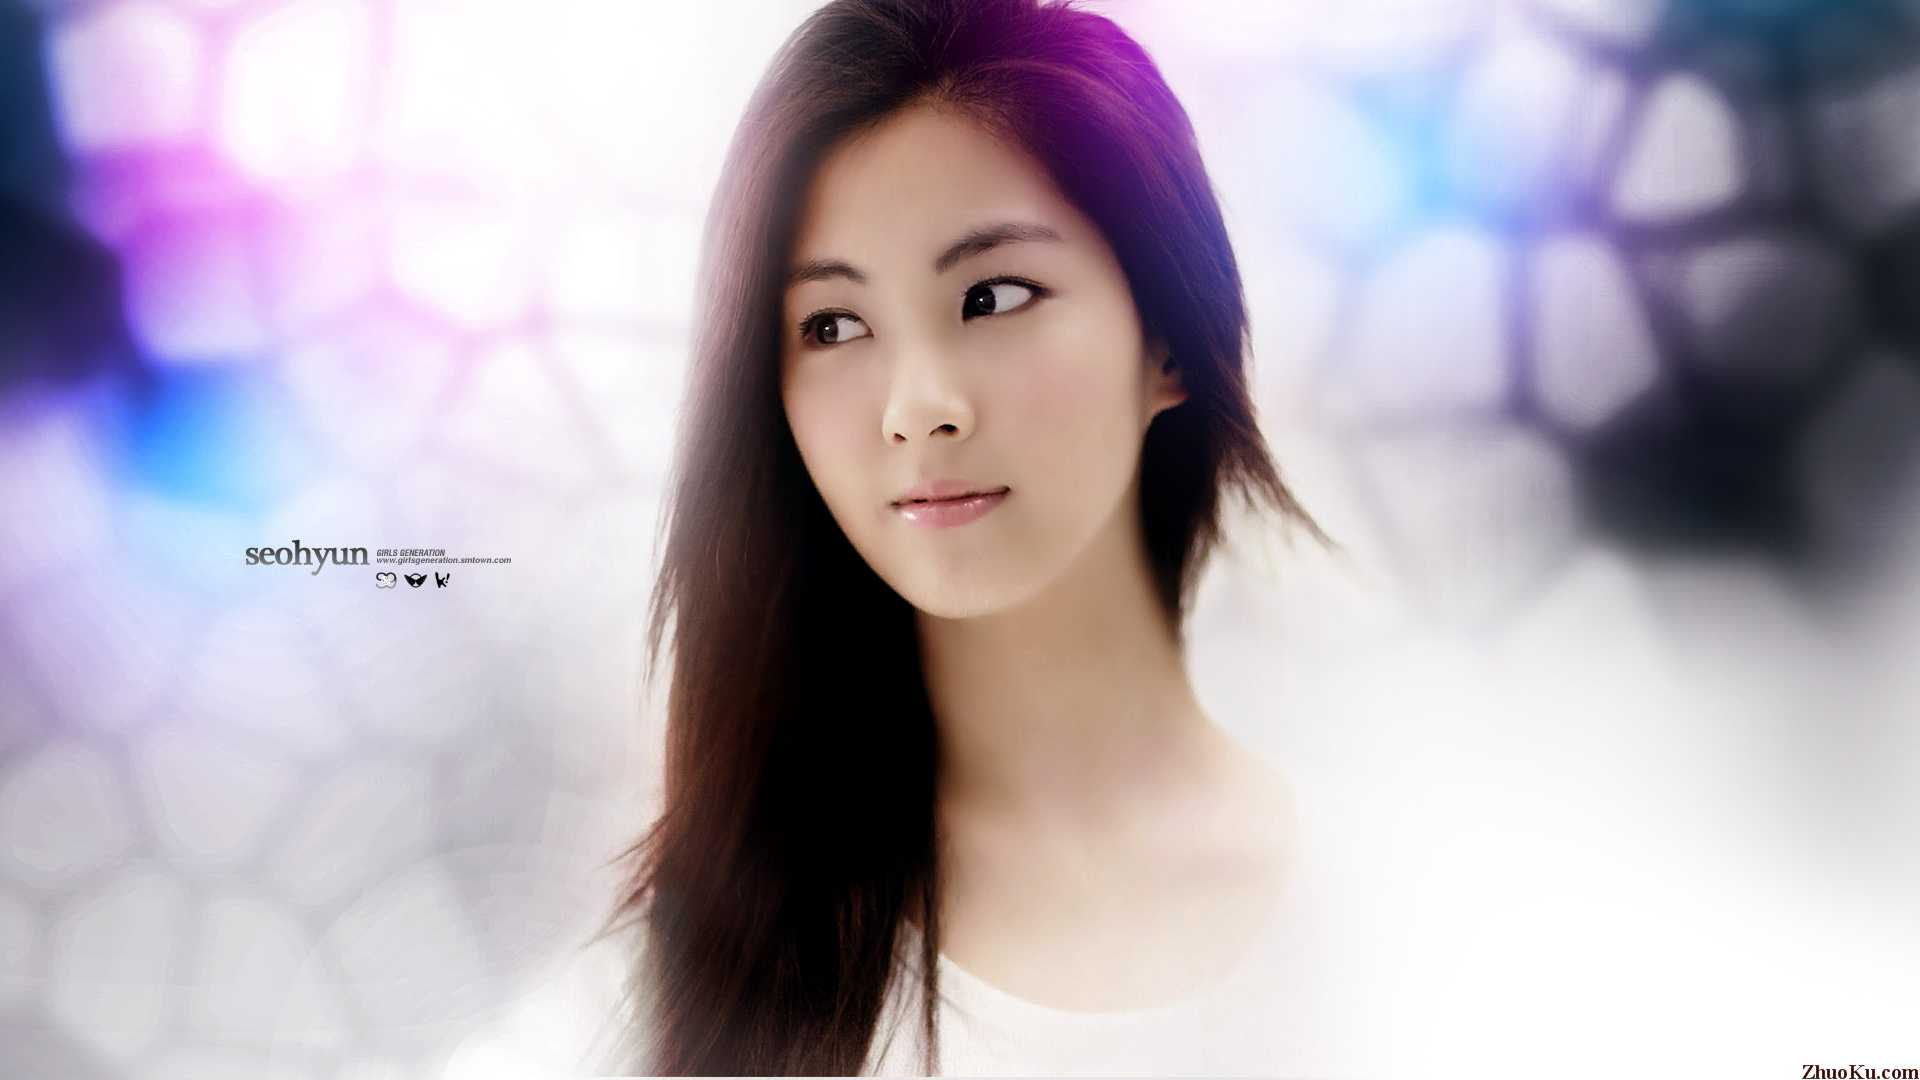 Ni nice korean girl hairstyles - Girls Generation Full Hd Wallpaper 1920x1080